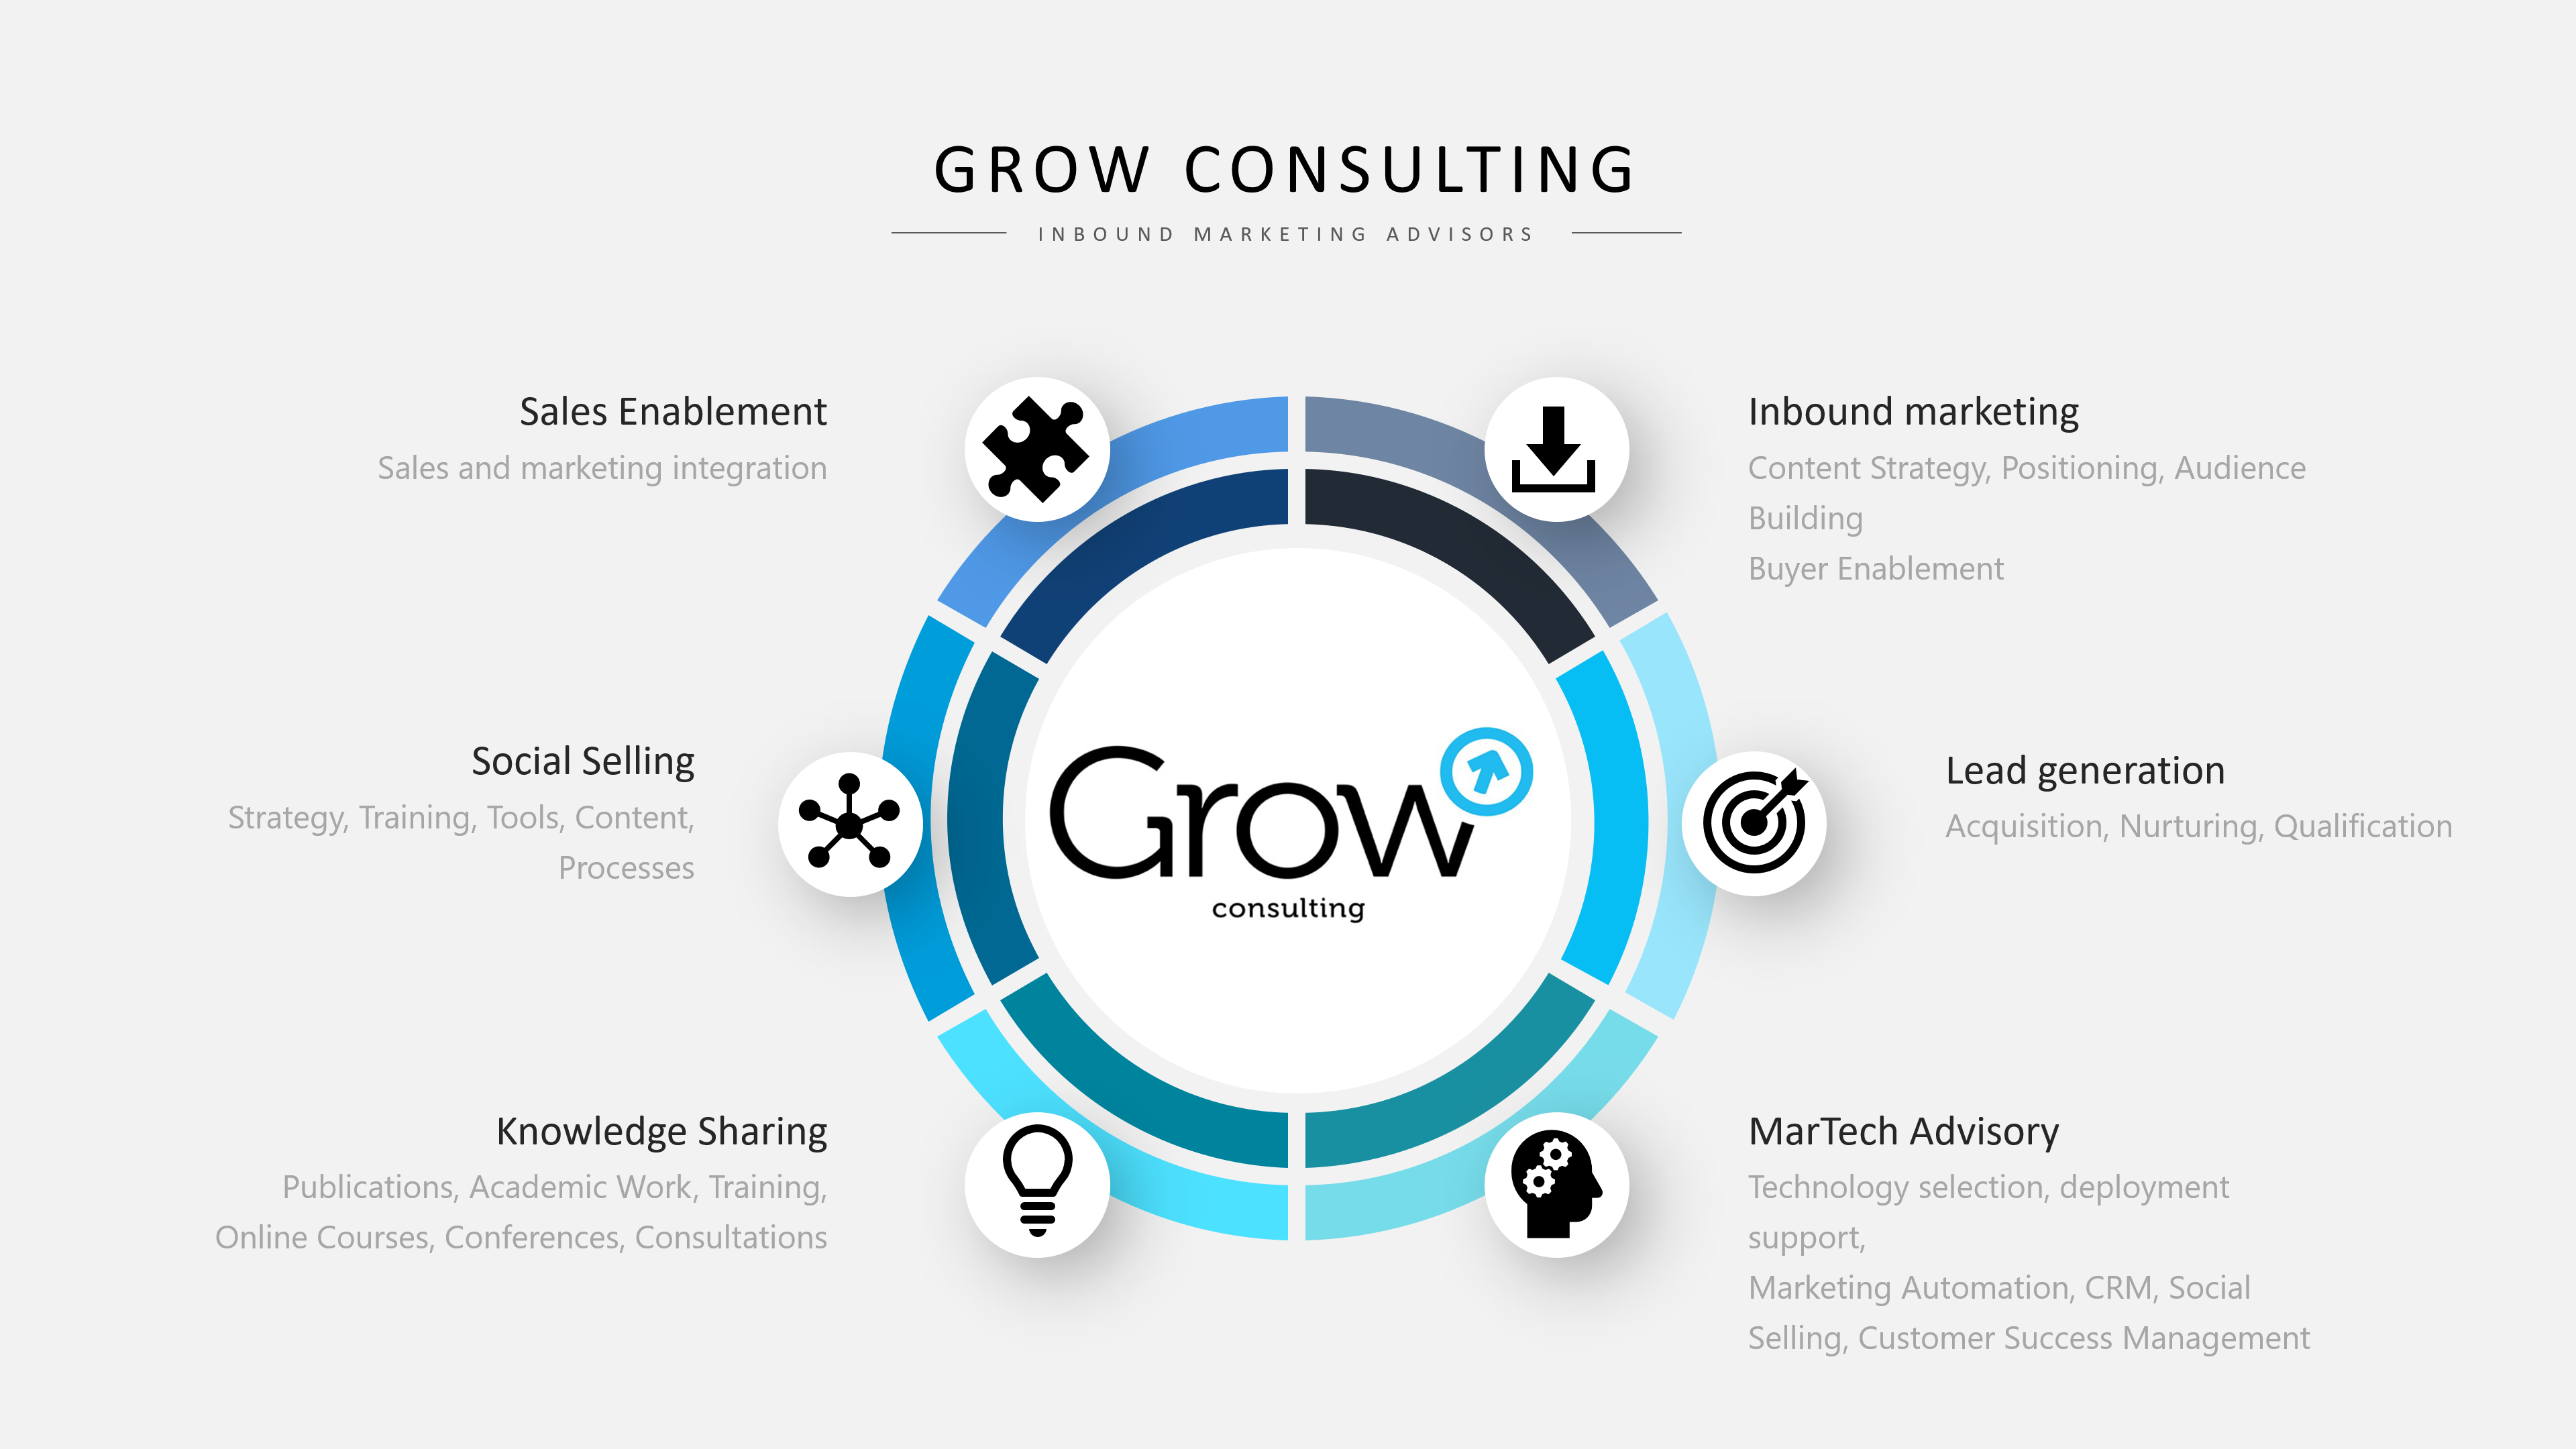 about grow consulting